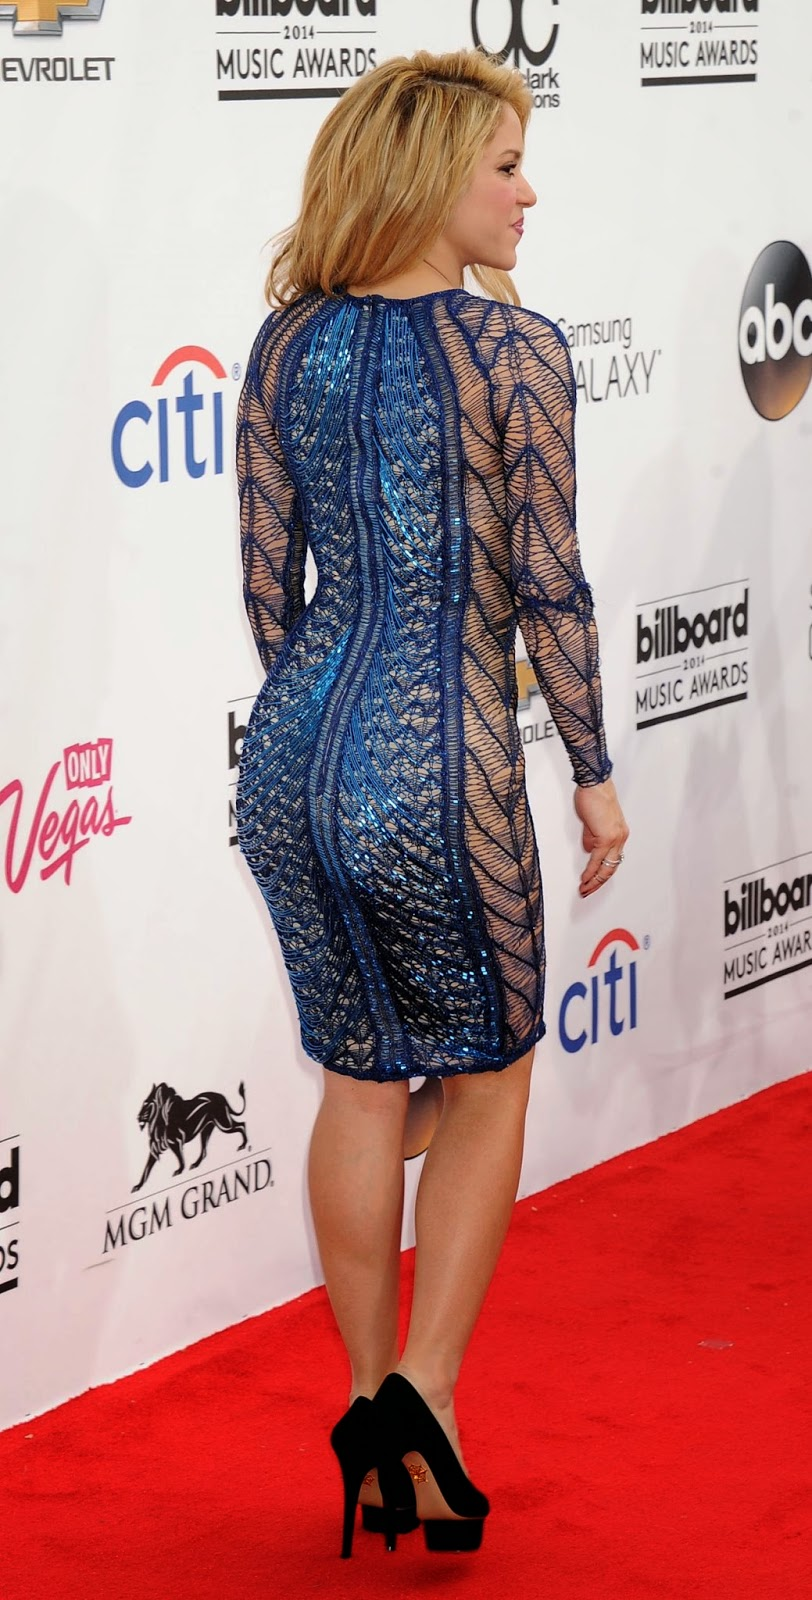 Shakira New Photos Events At Billboard Music Awards 2014